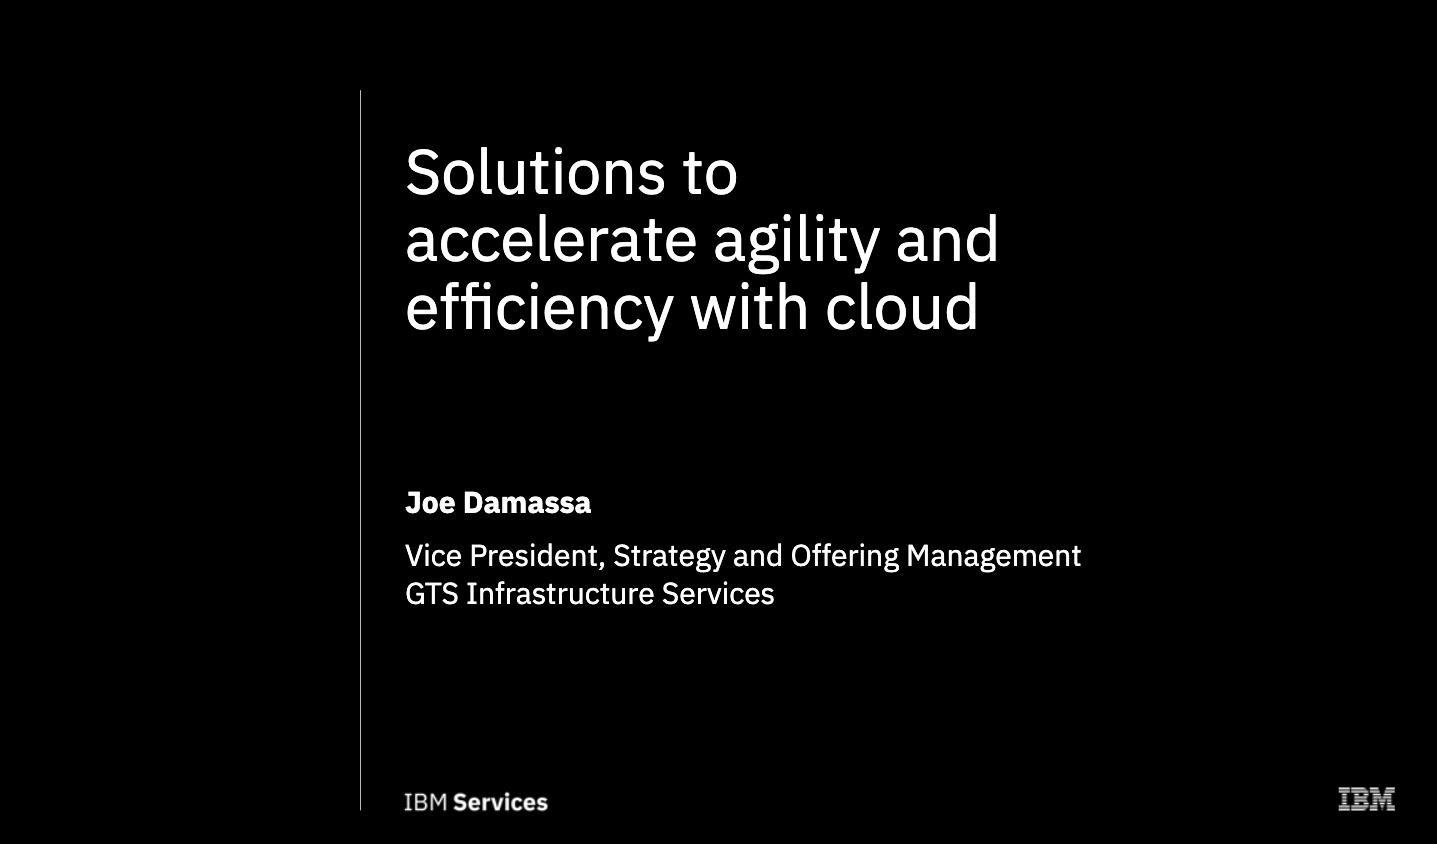 Solutions to accelerate agility and efficiency with cloud